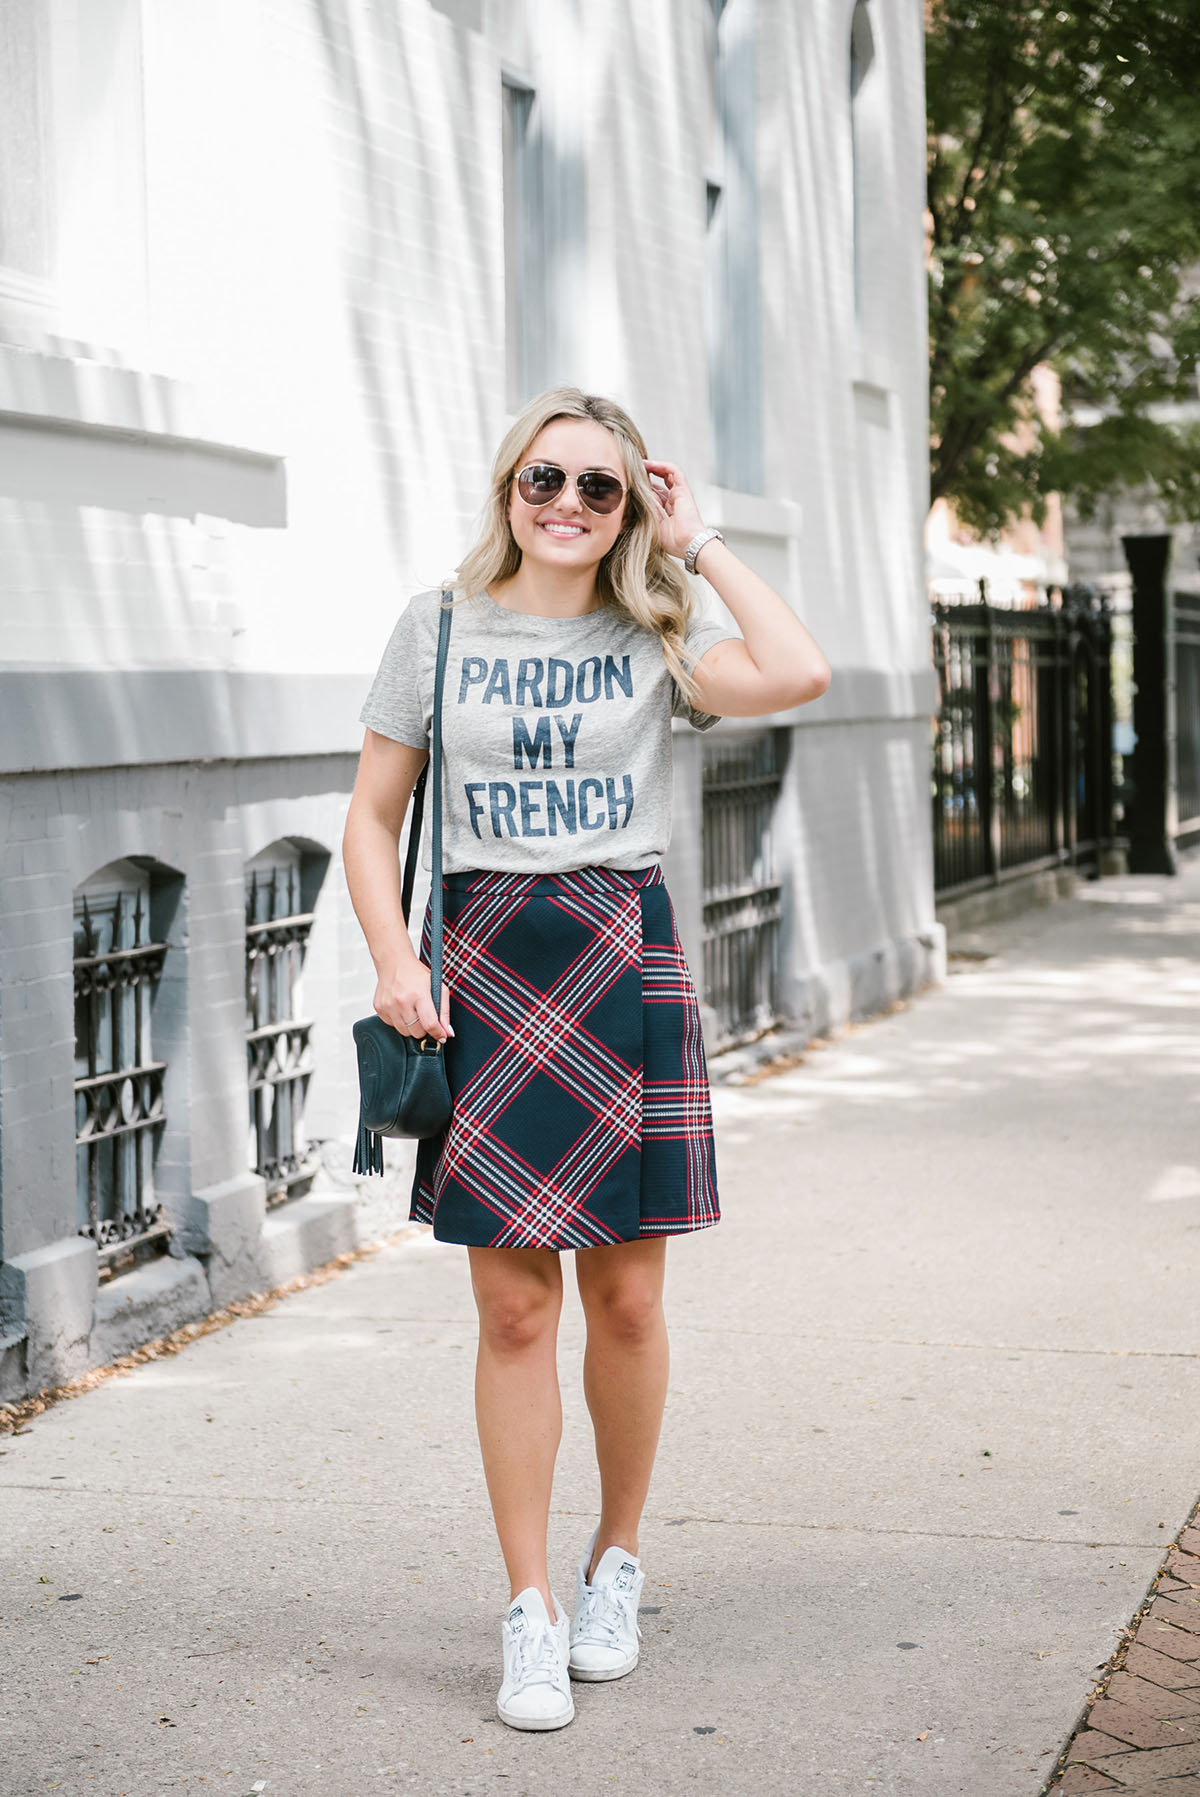 Bows & Sequins wearing a Pardon My French tee from J.Crew with a plaid skirt and Stan Smith sneakers.